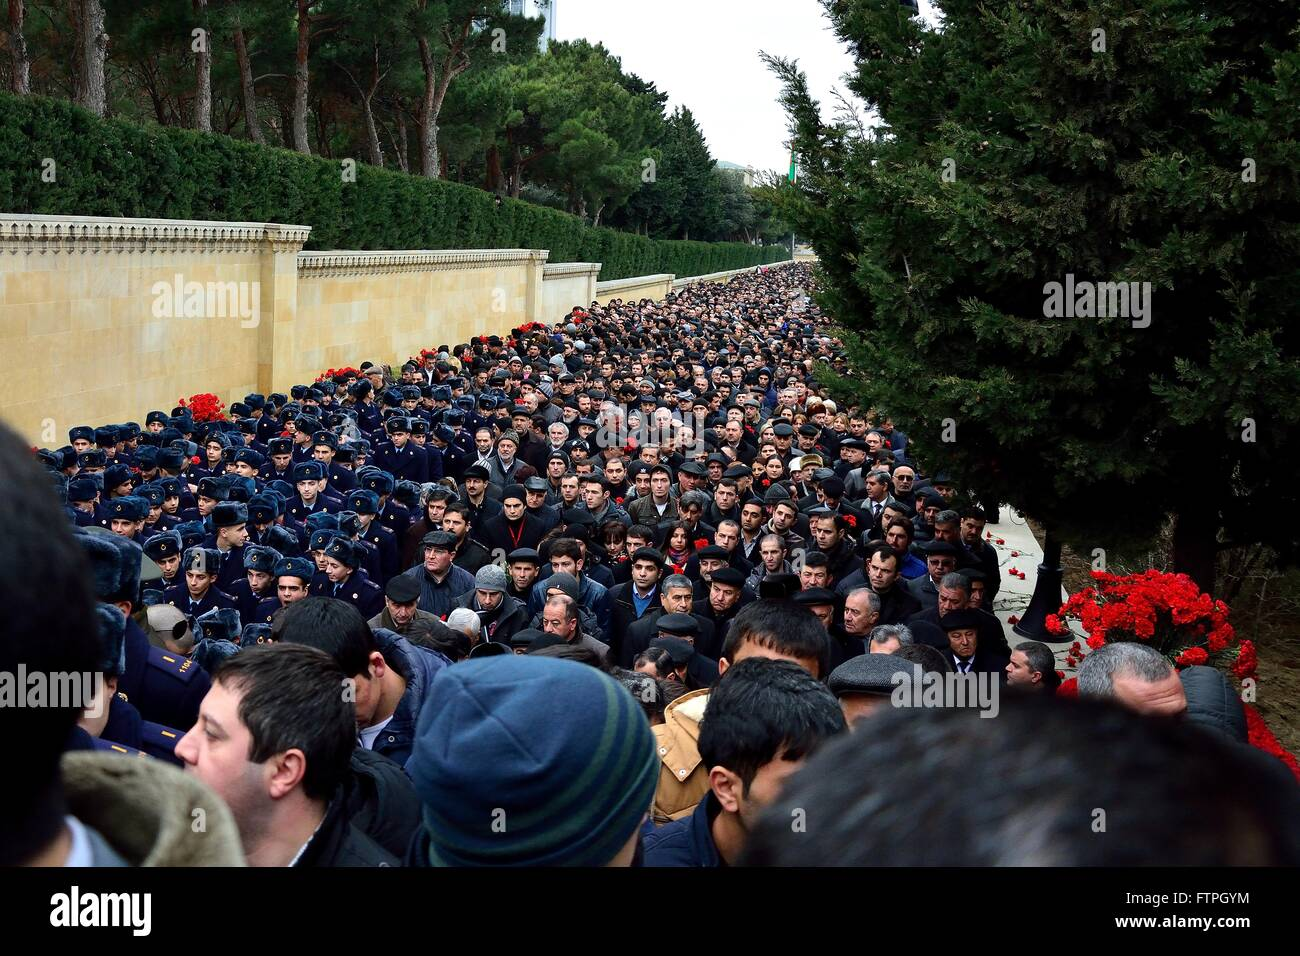 BAKU, AZERBAIJAN - JANUARY 20 2014 Crowds of cadets and mourners at monument in Baku, on anniversary of killings - Stock Image